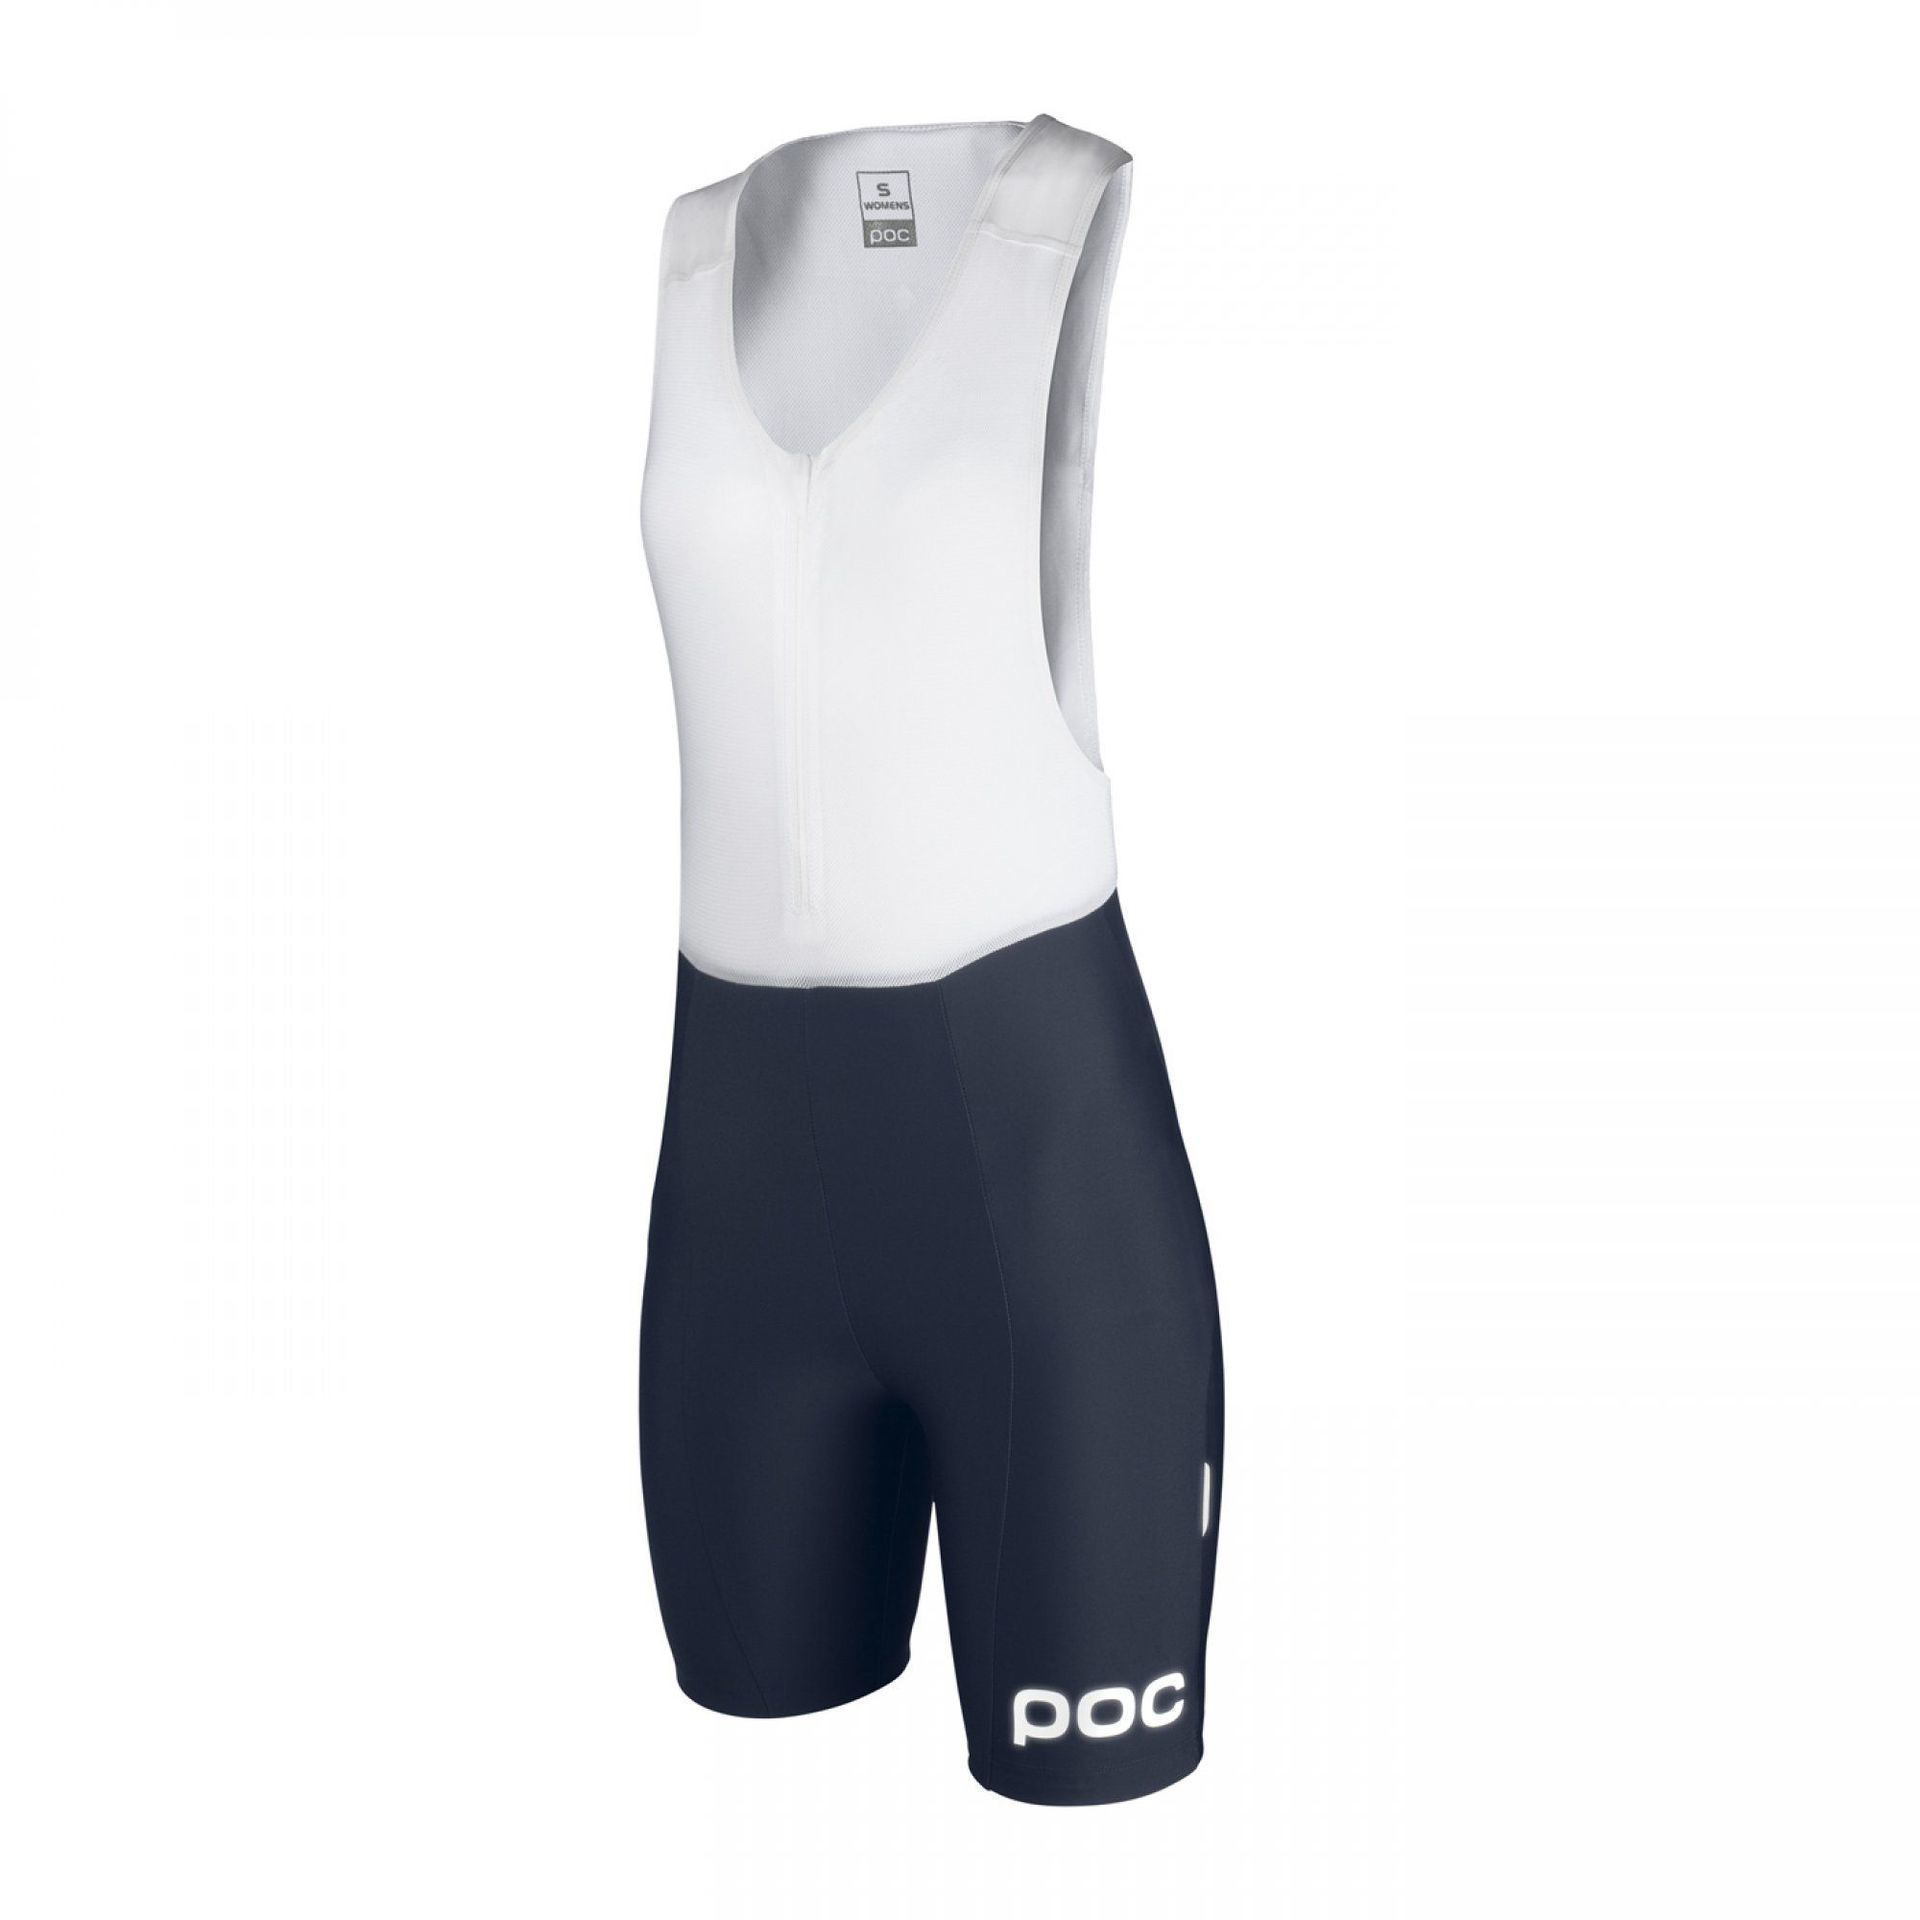 SPODENKI POC MULTI D WO BIB SHORTS NAVY BLACK